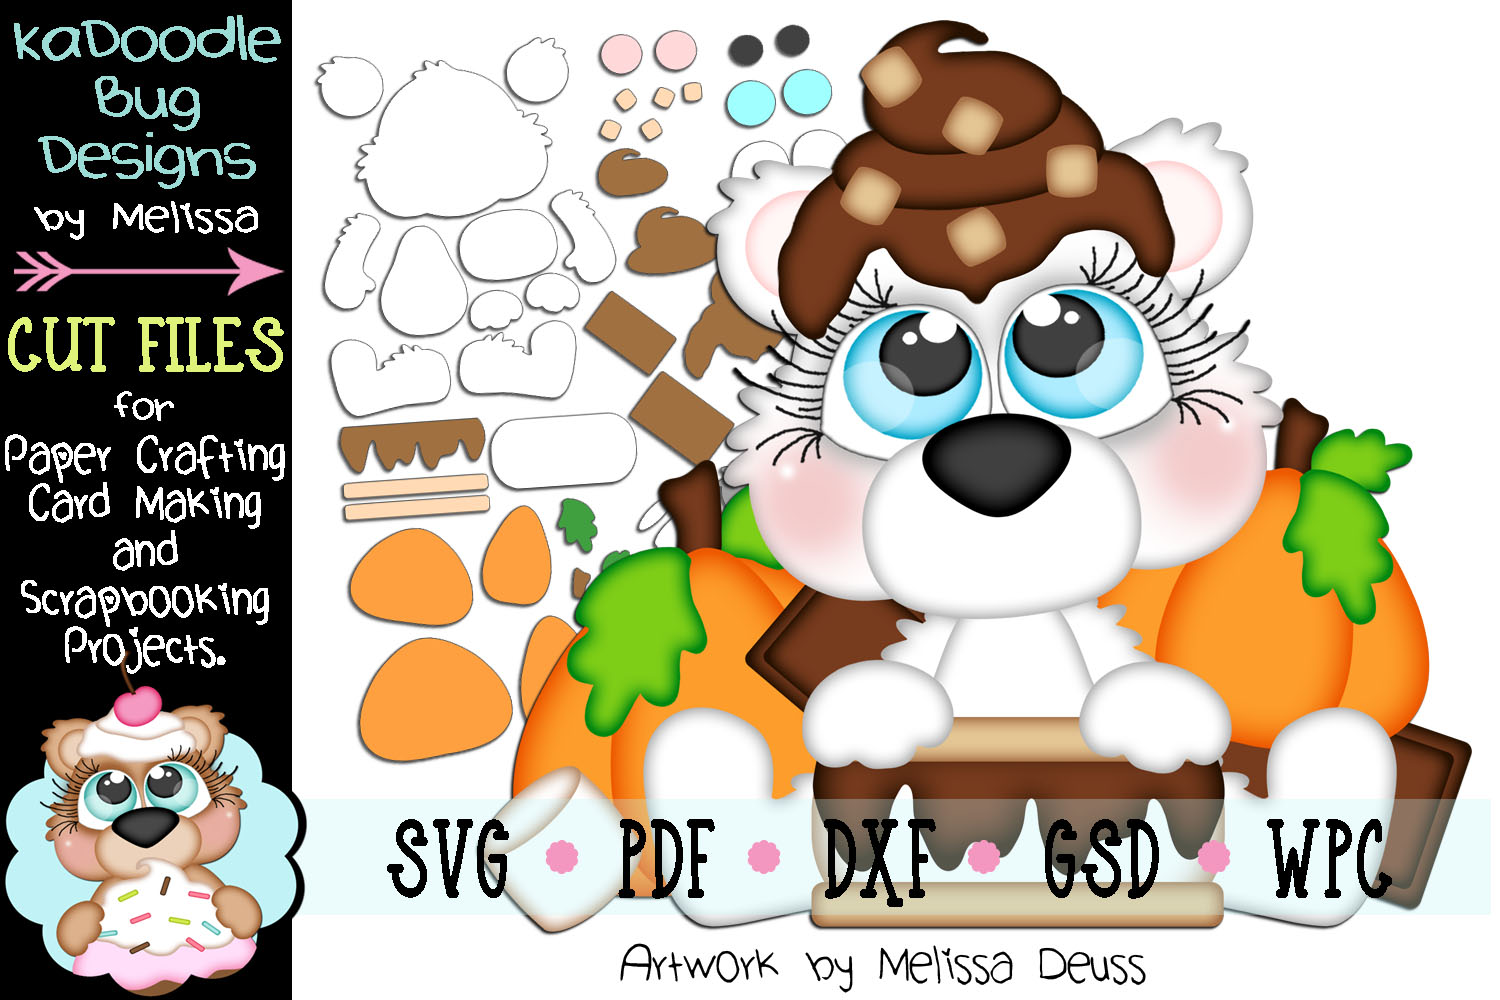 Fall Smore's Bear Cut File - SVG PDF DXF GSD WPC example image 1